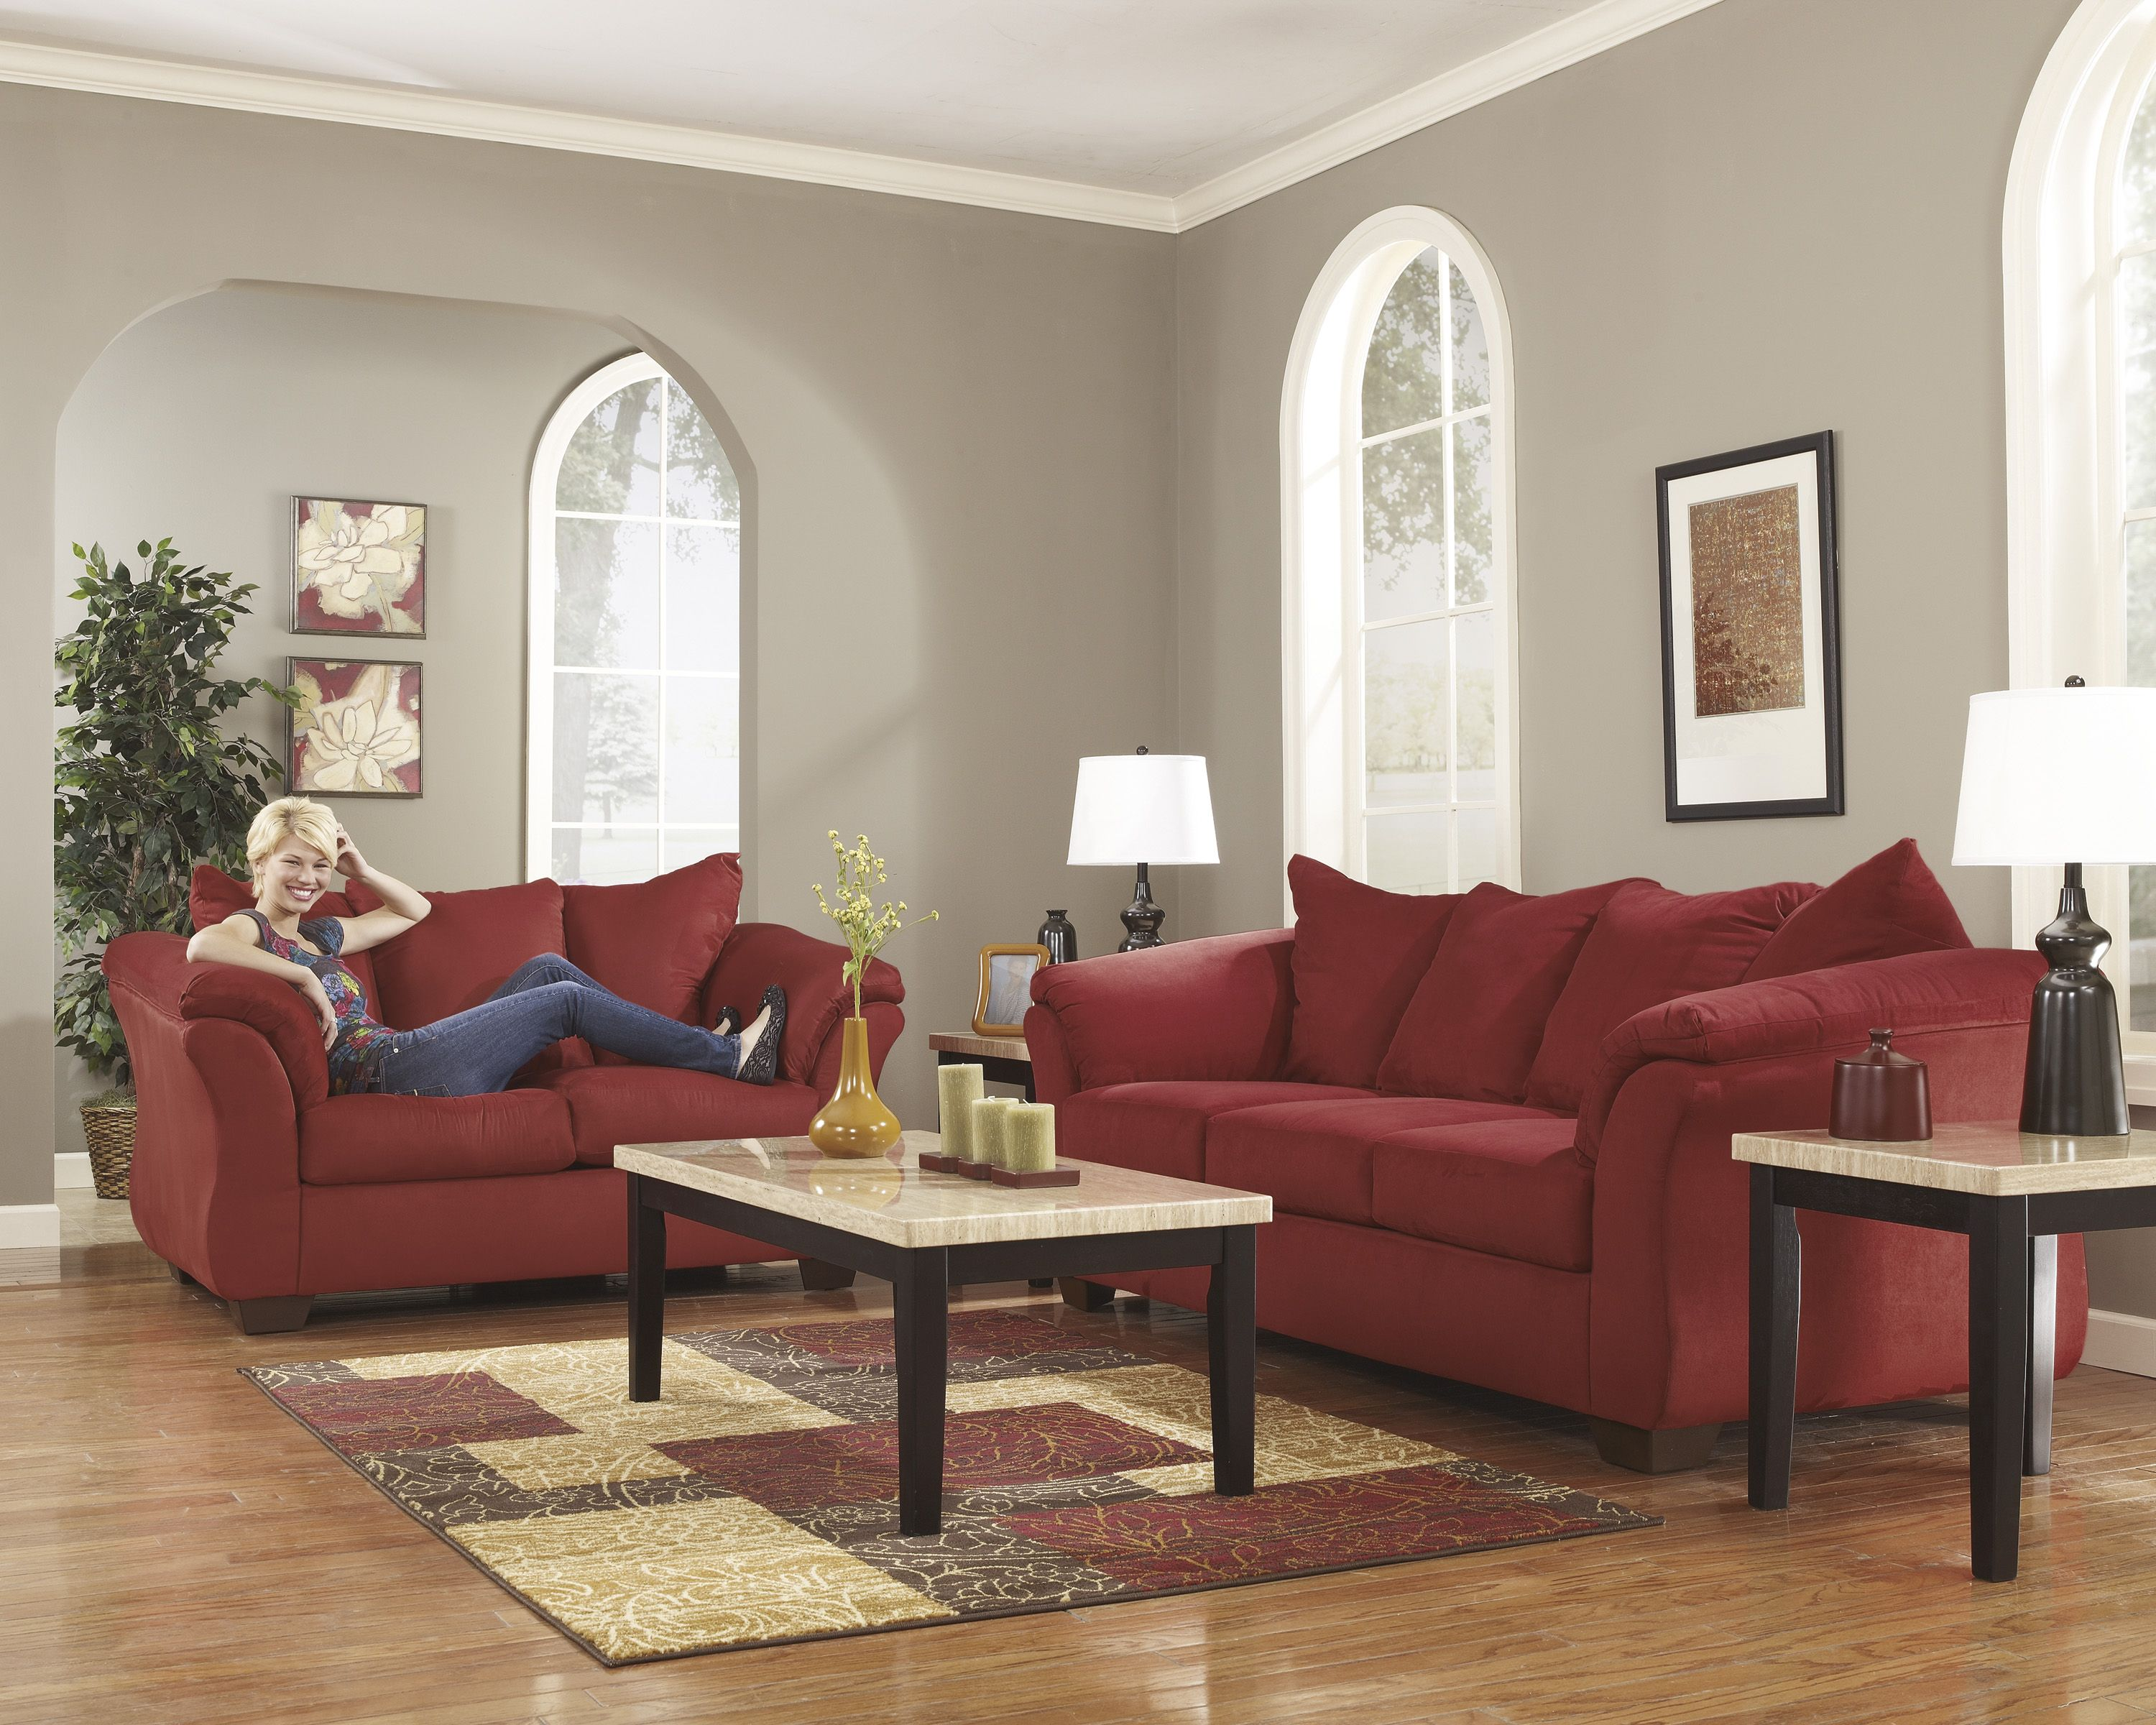 Sofa, Loveseat, 3 Tables, 2 Lamps, 1 Rug o 1 Sectional, 3 Tables ...